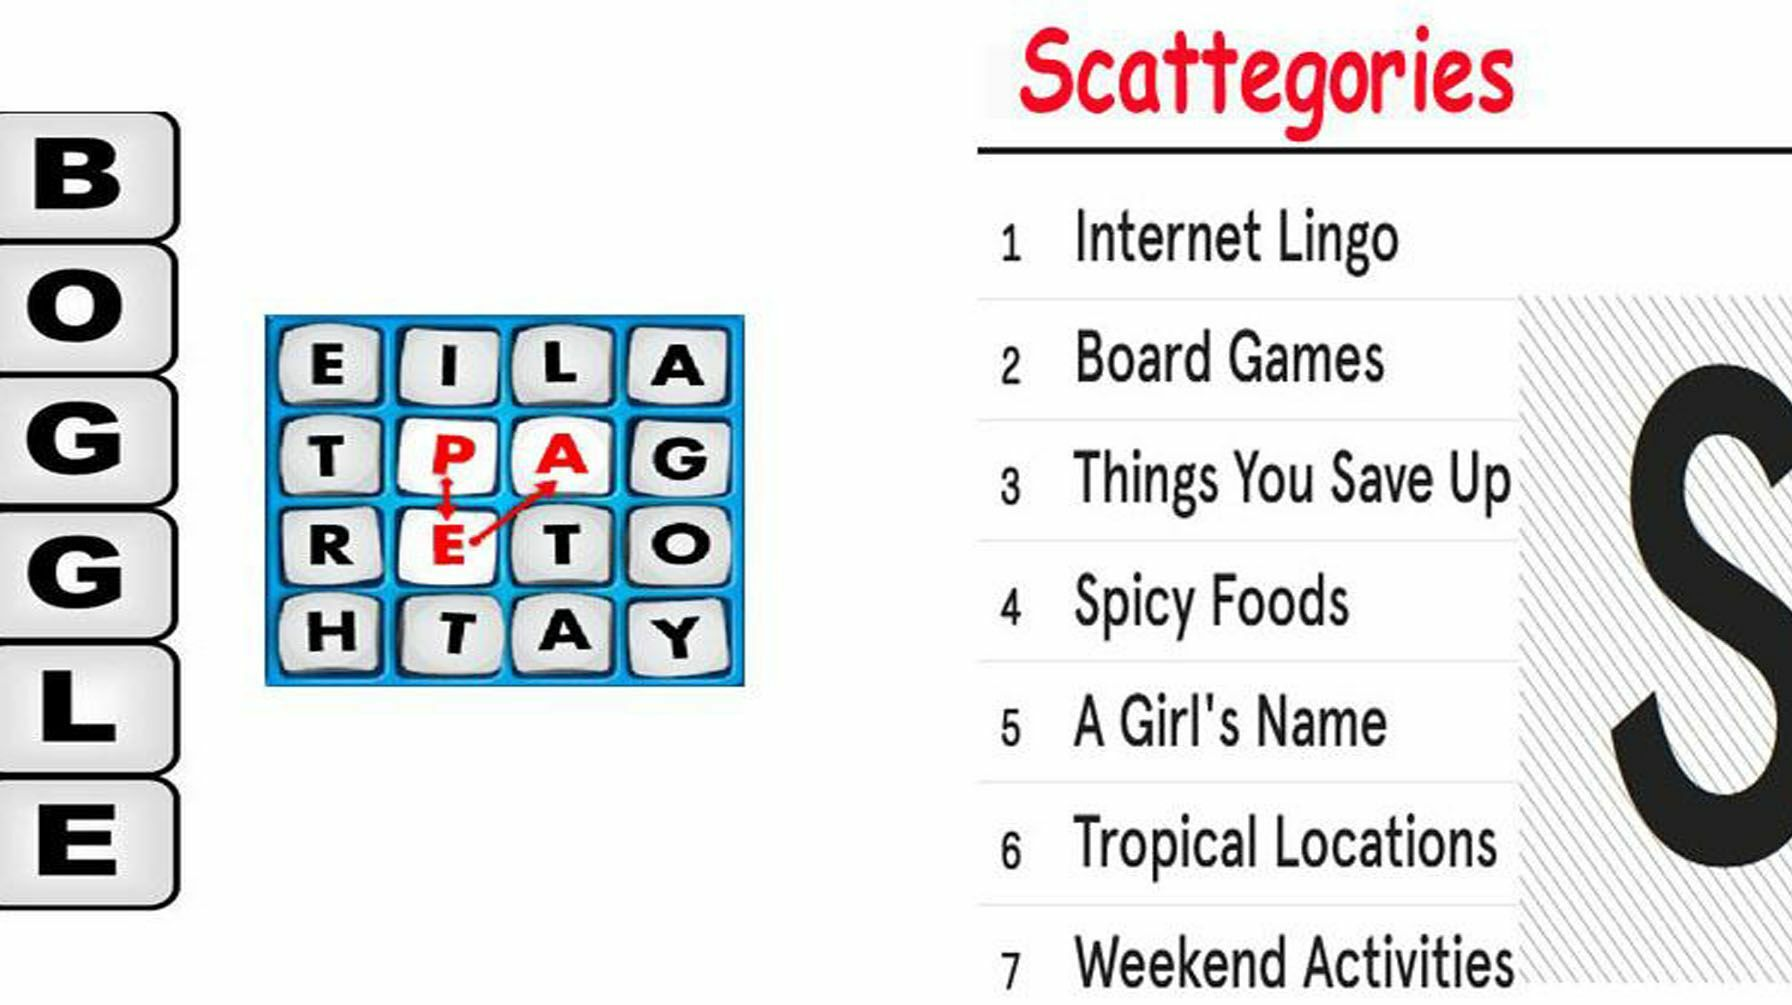 Scattegories and Boggle your mind virtual event